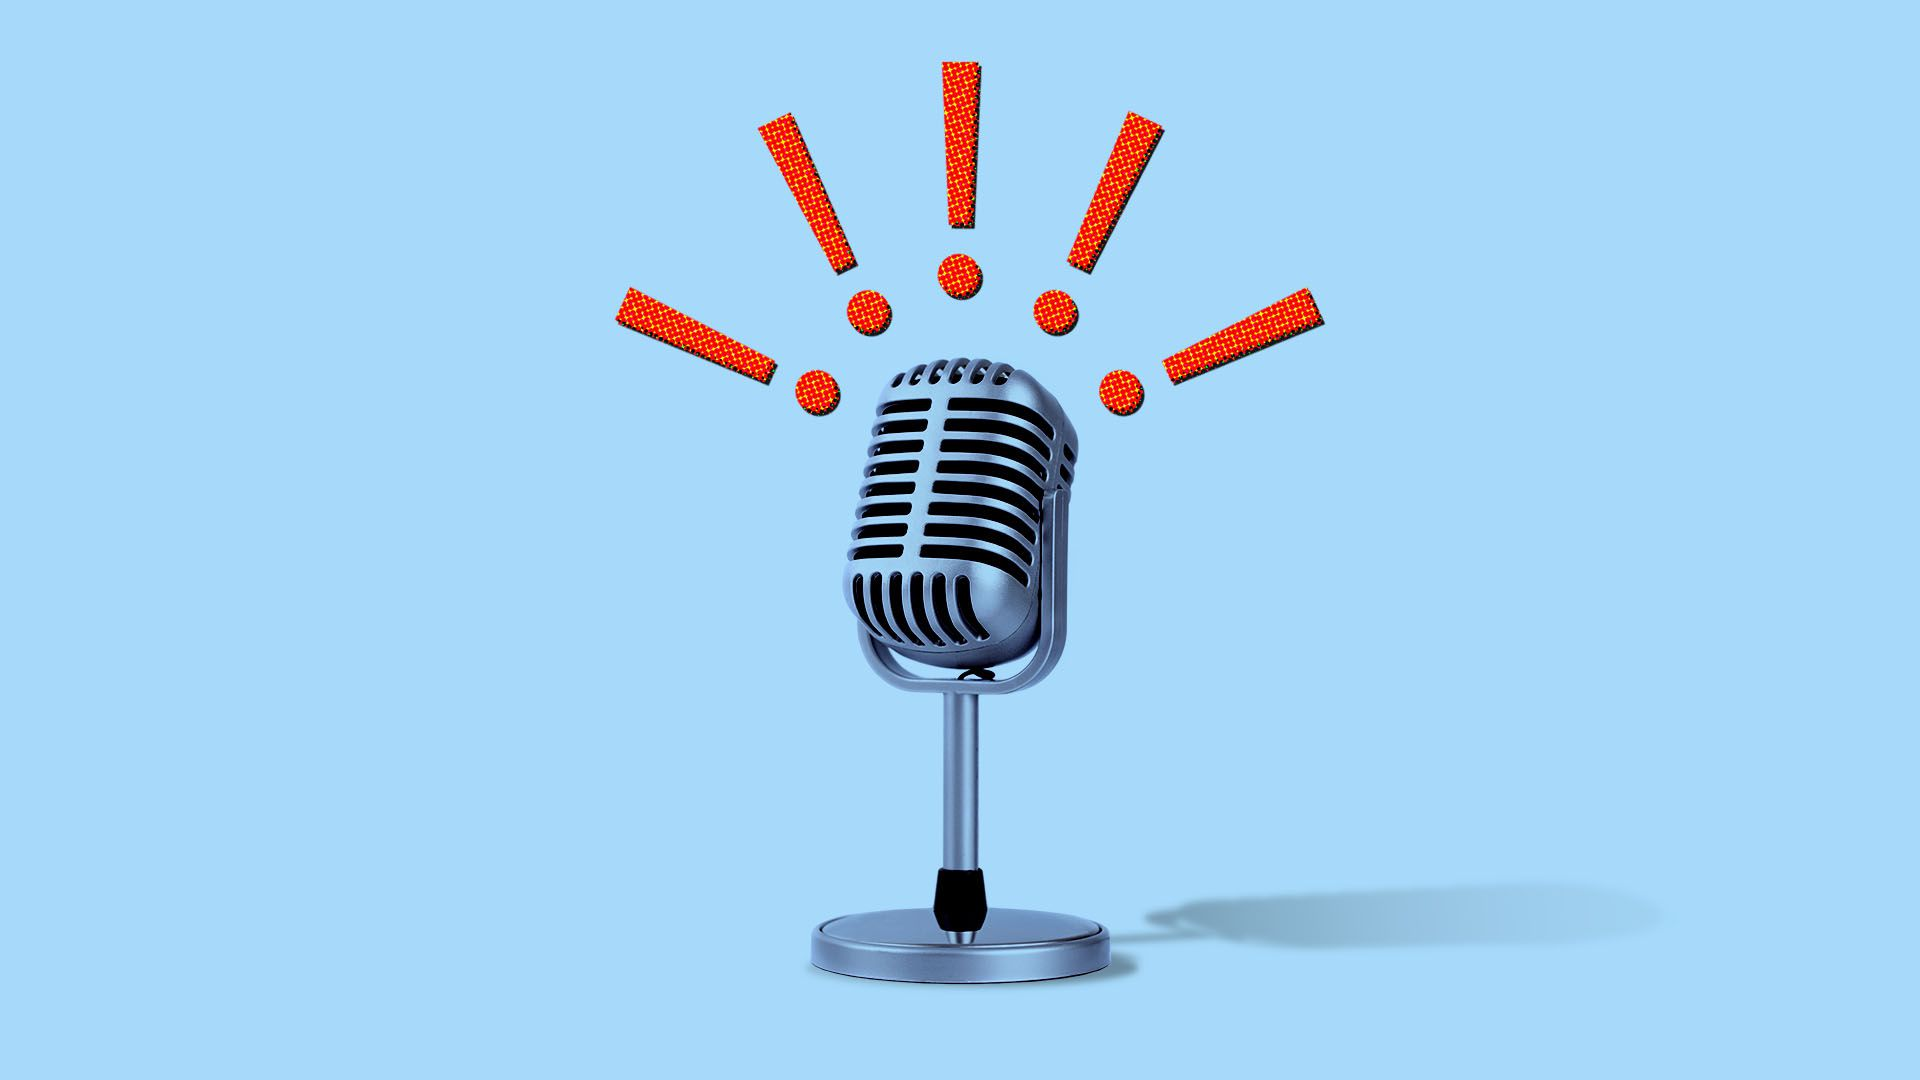 Illustration of a microphone surrounded by exclamation points